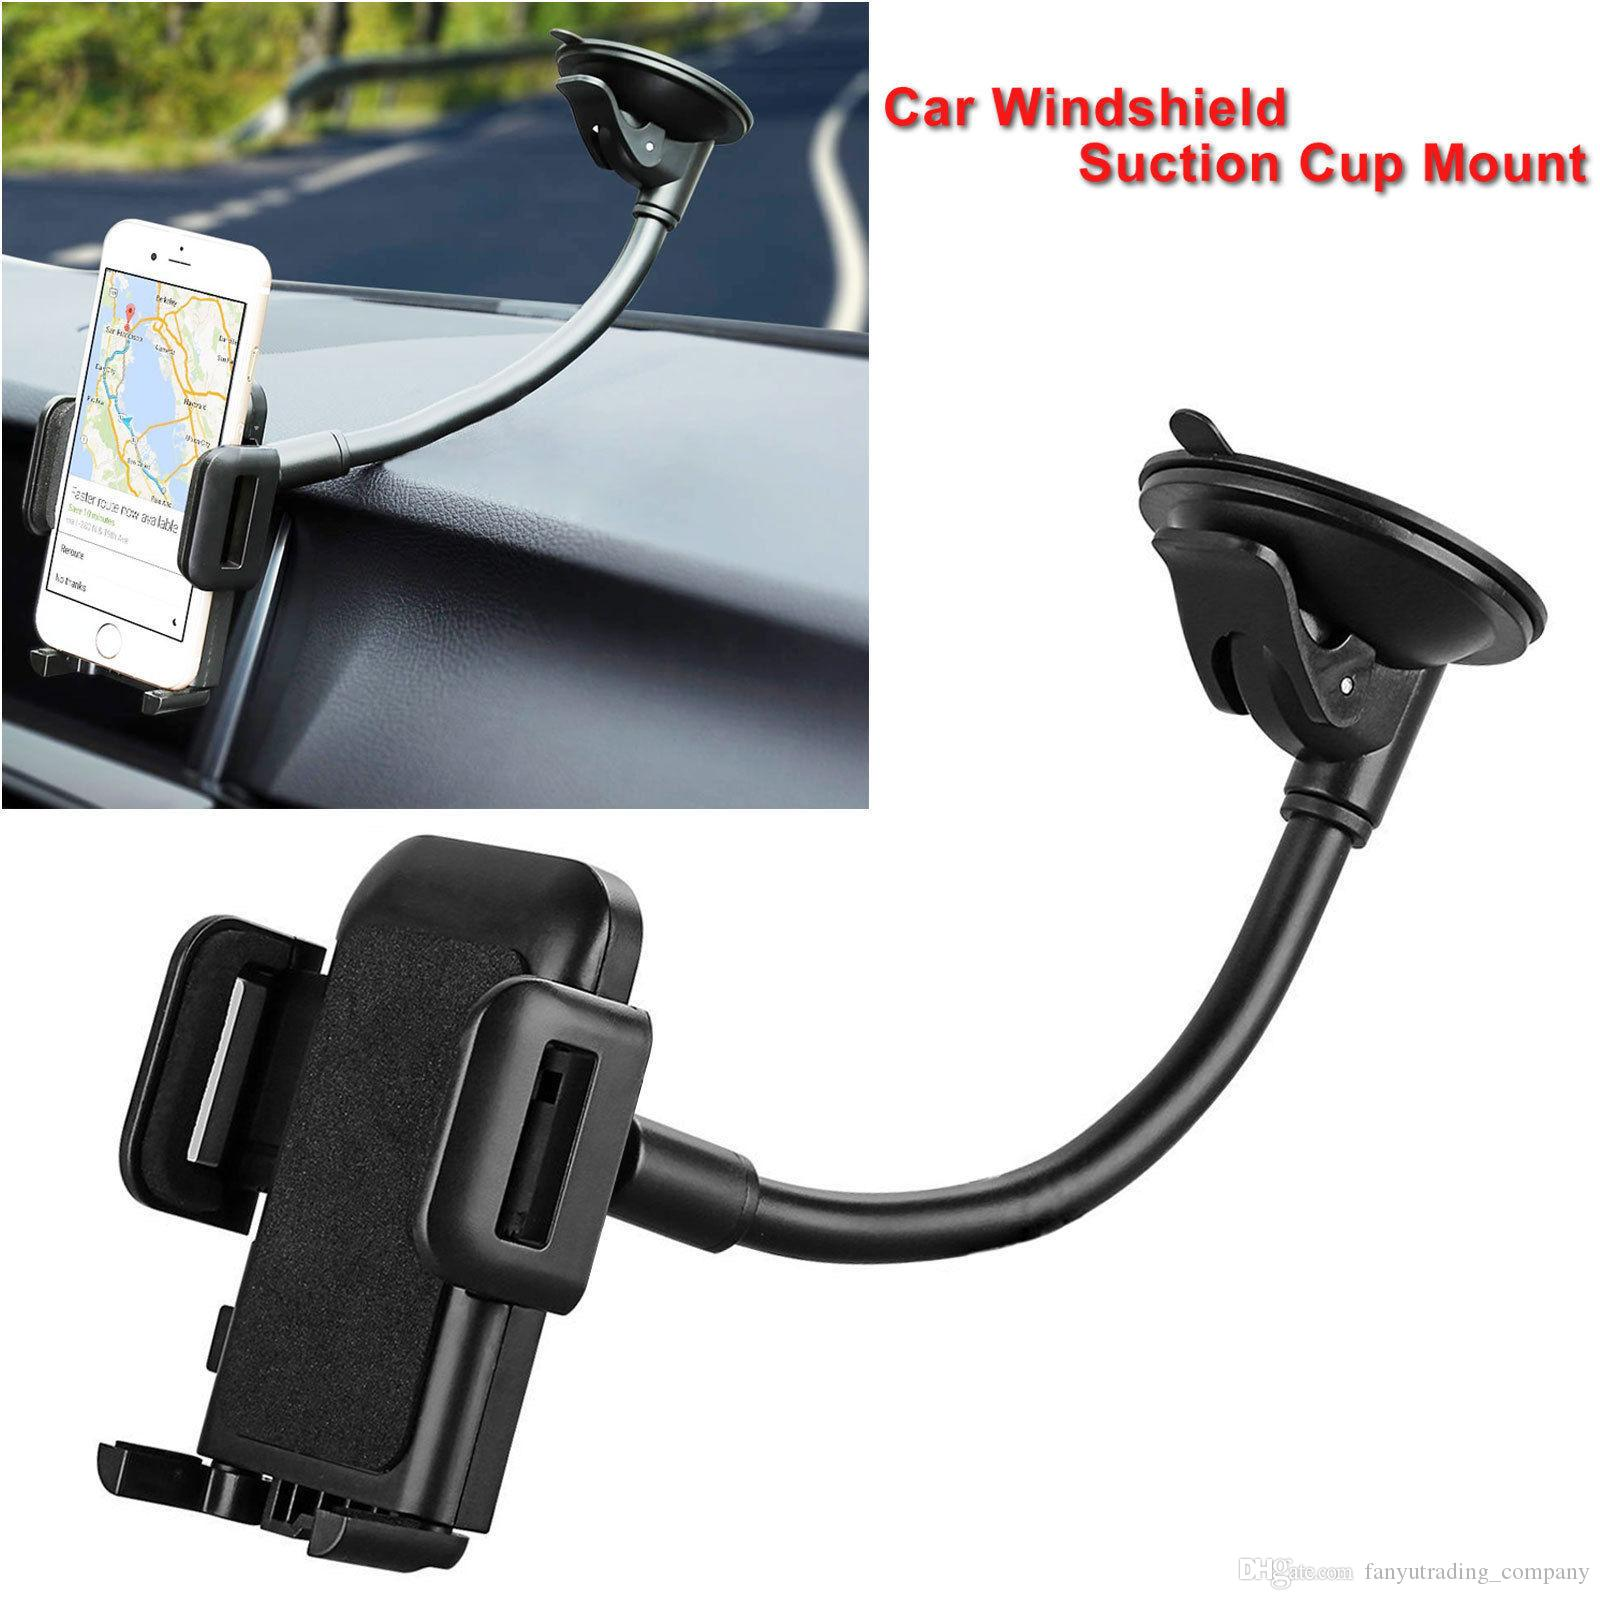 New 360 Degree Rotatable Suction Cup Swivel Mount Car Windshield Holder Stand Cradle For Cell Phone/iPhone/iPad/PDA/MP3/MP4 Free Shipp